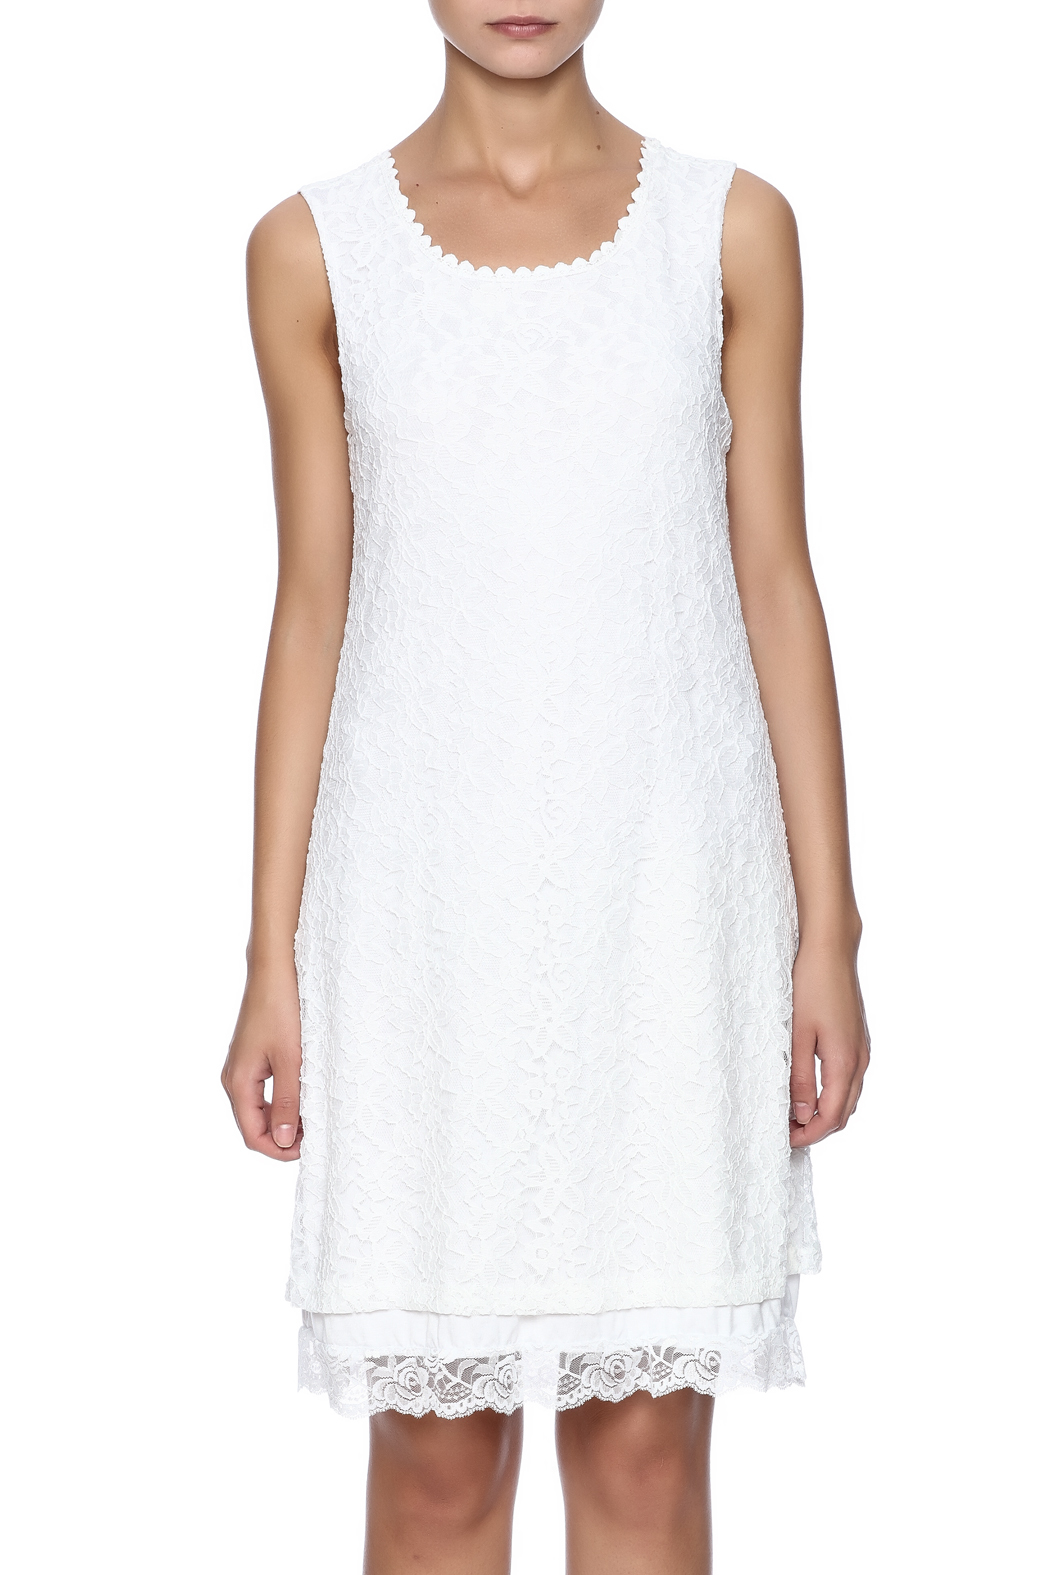 Charlie B. White Lace Dress - Side Cropped Image